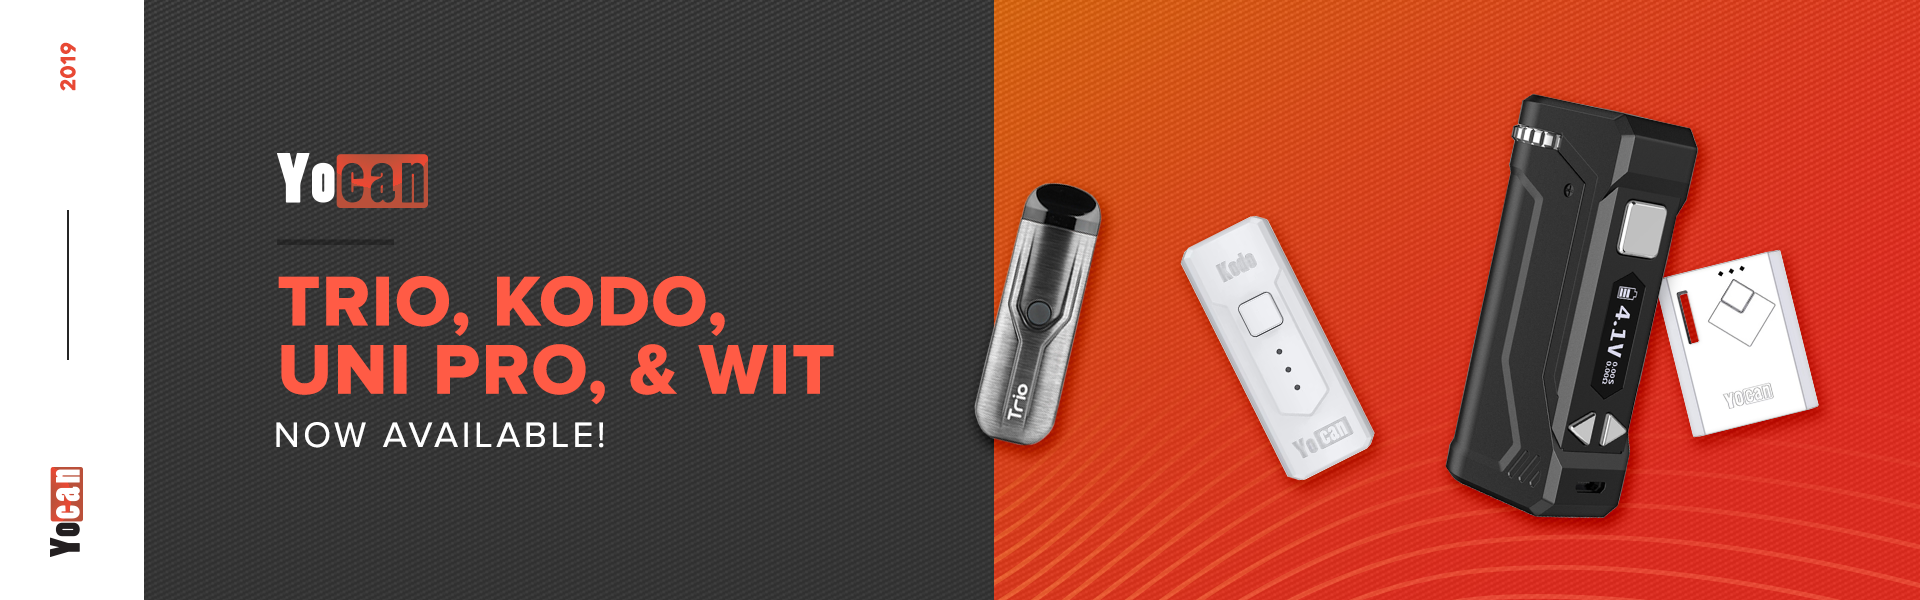 Yocan Trio Kodo Wit and UNI Pro Now Available